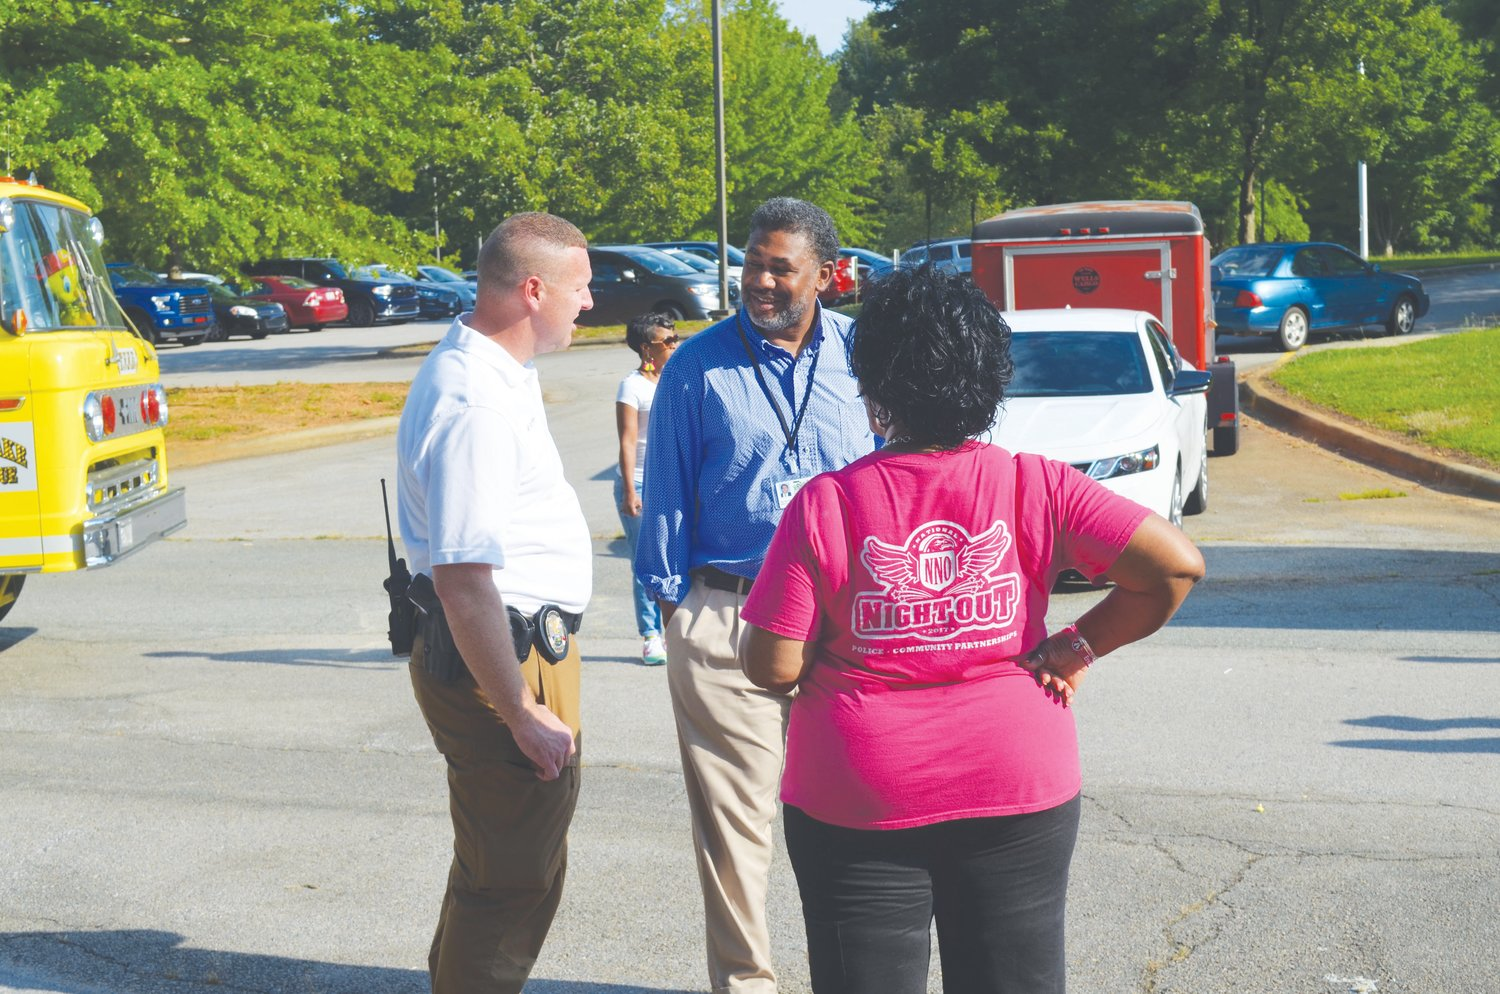 Roxboro Police Chief David Hess, MADD chapter leader Ollie Jeffers and Roxboro Housing Authority Executive Director Felts Lewis talk at National Night Out.